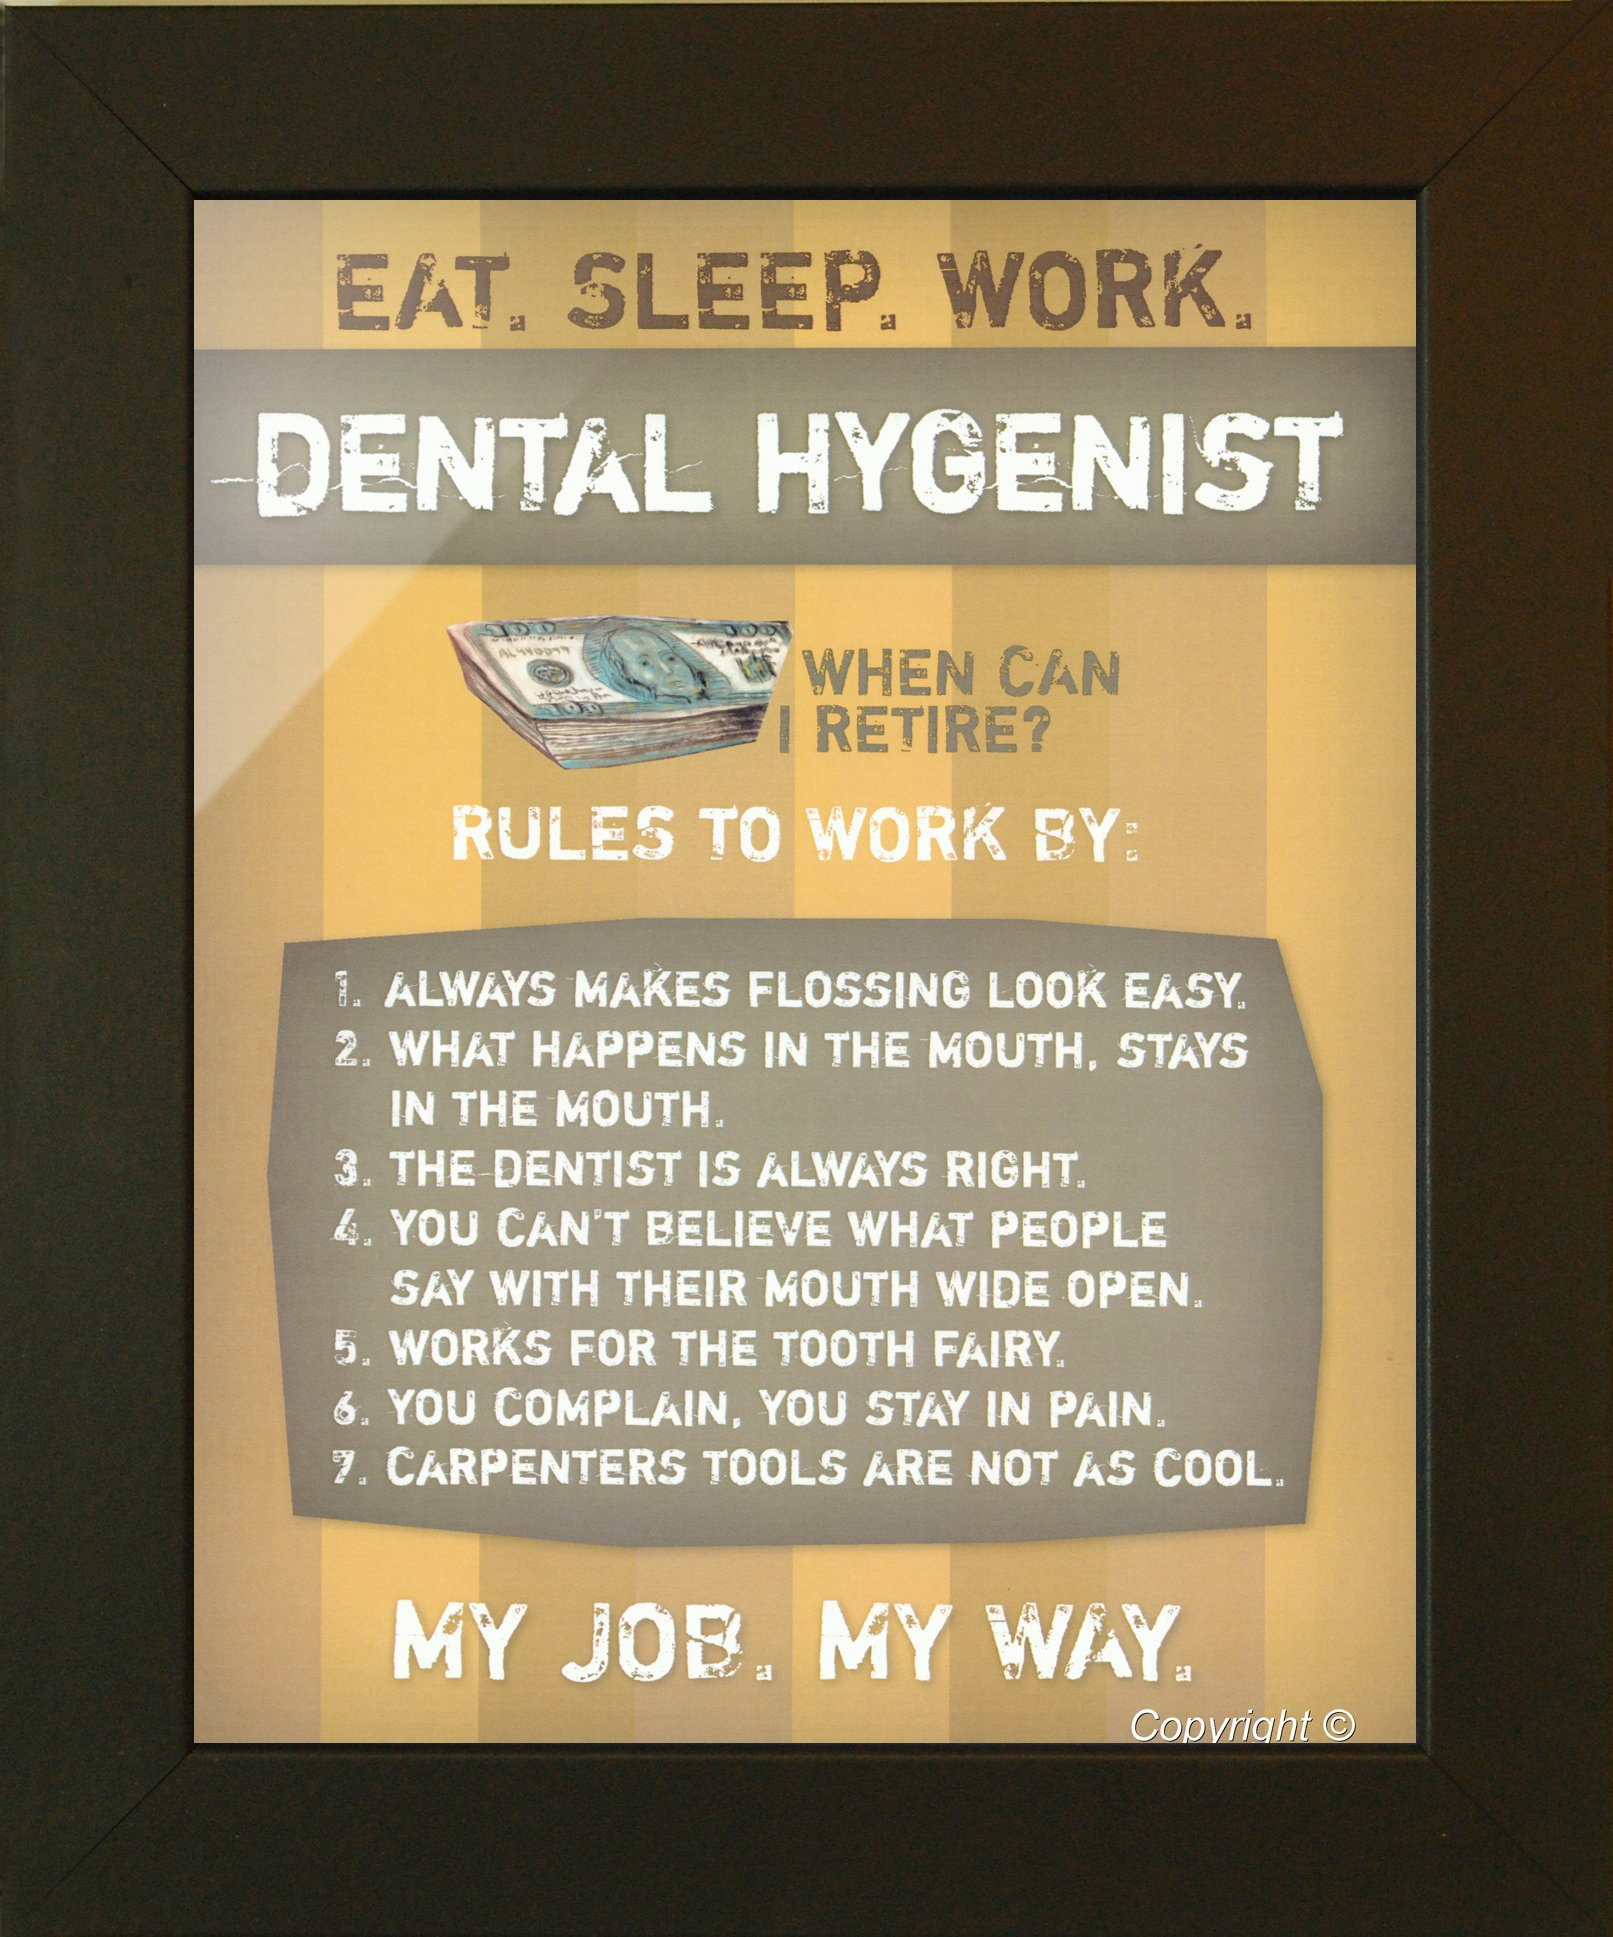 Quotes And Sayings: Dental Hygiene Quotes And Sayings. QuotesGram